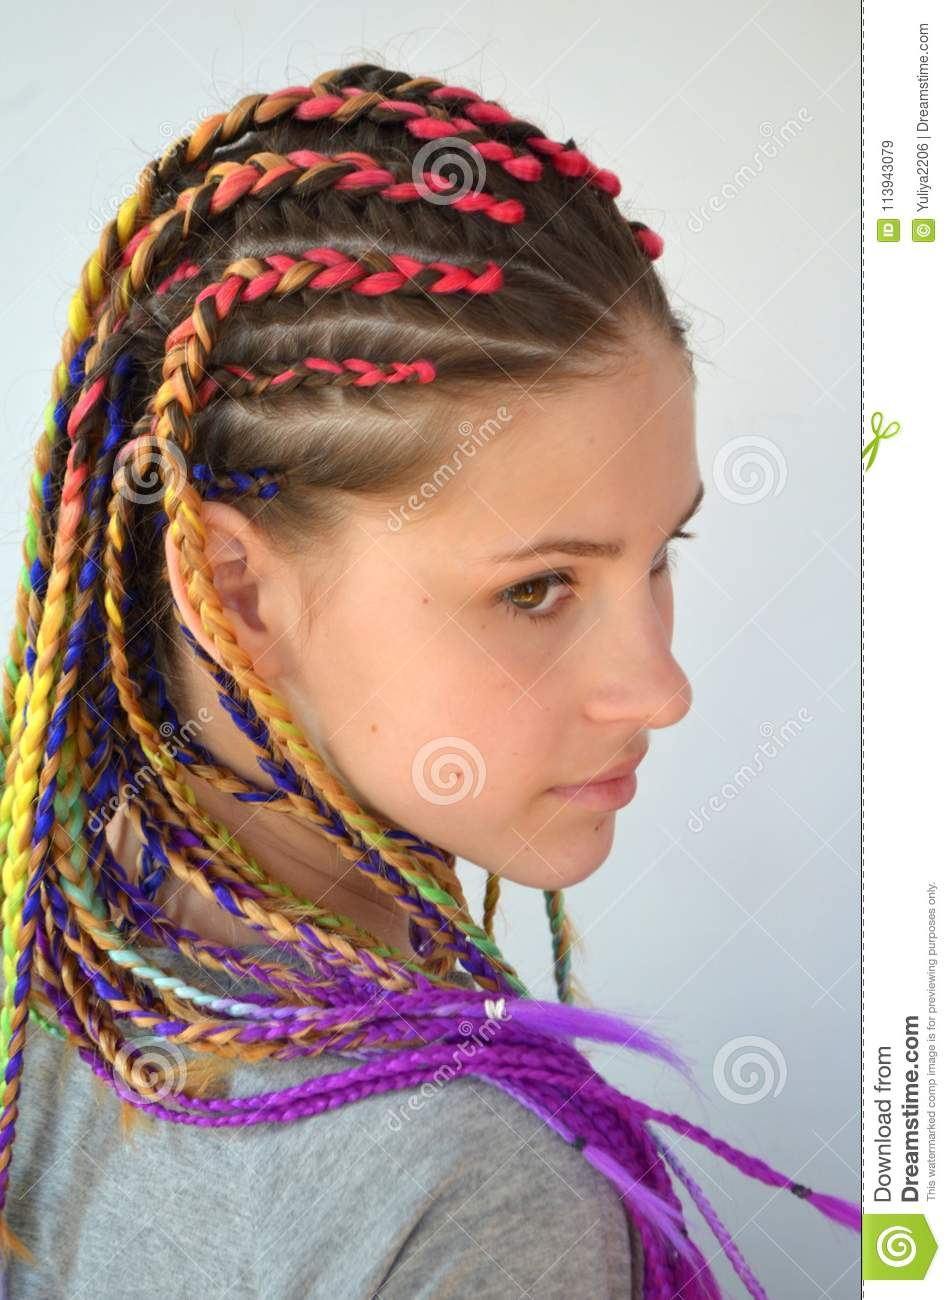 A Girl With A Fashionable Set Of Multicolored Braids